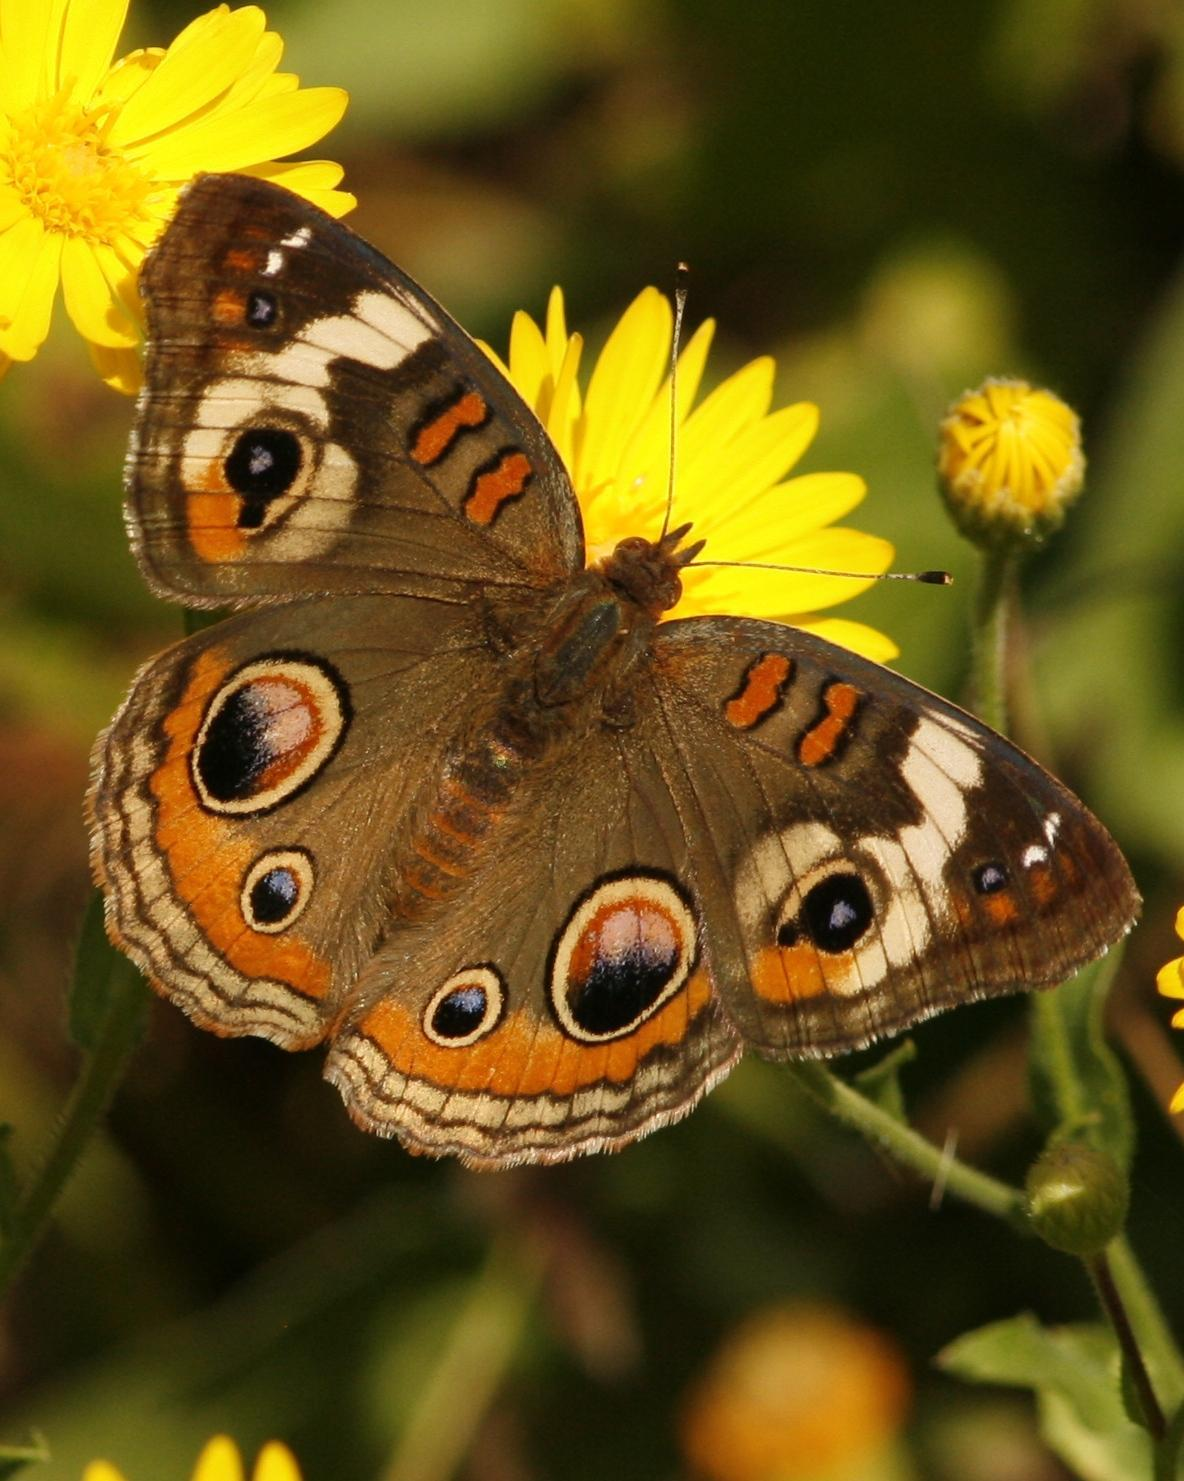 Common Buckeye Photo by Oscar Johnson